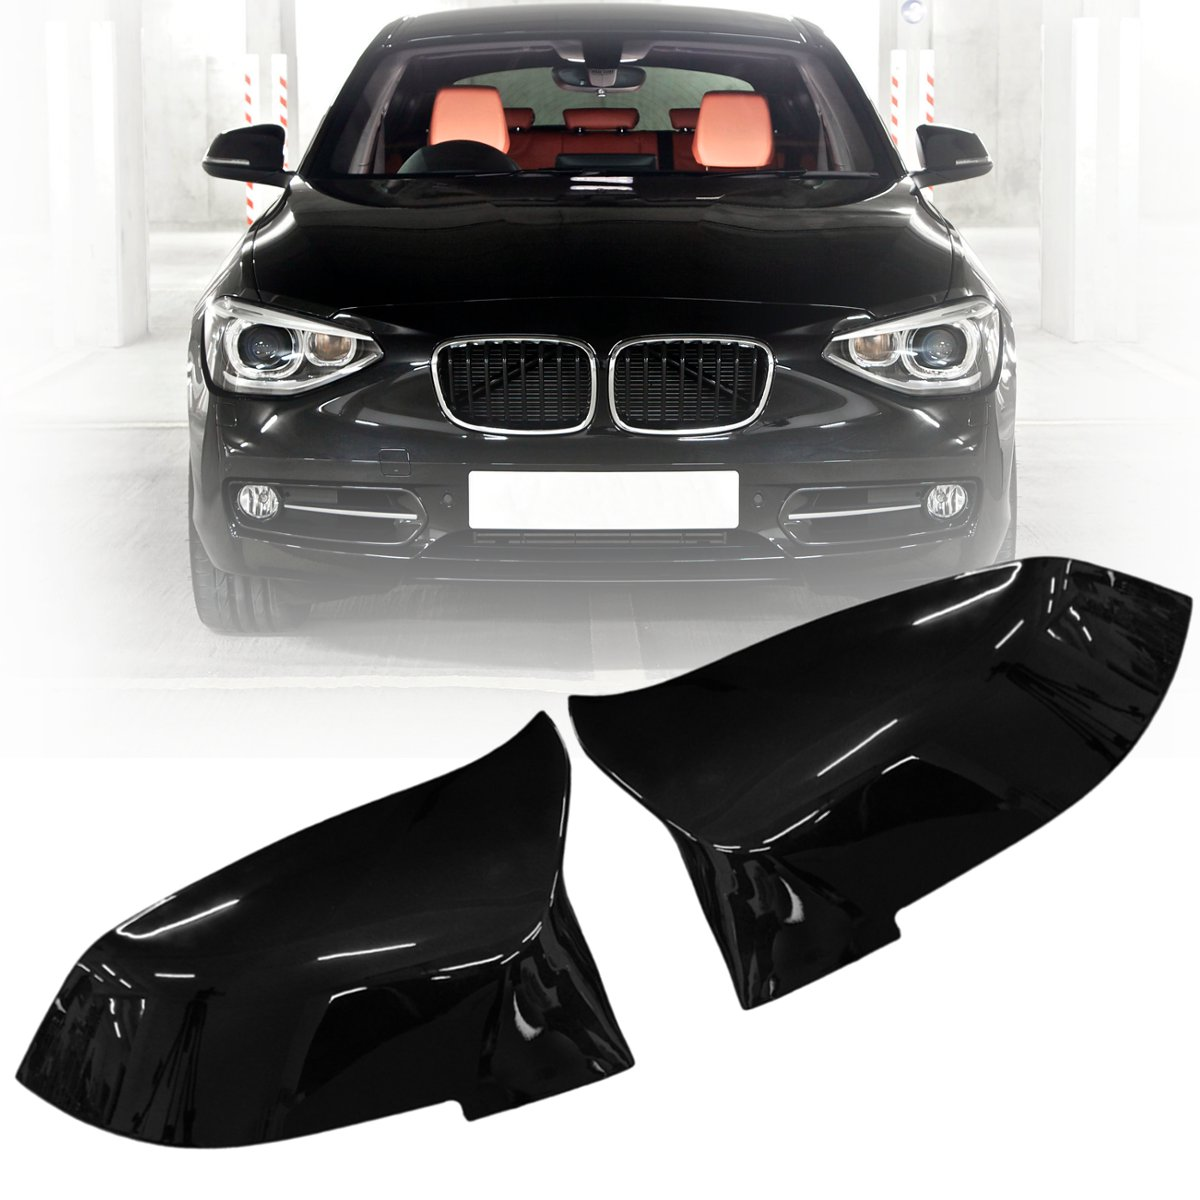 4 color Pair Gloss Black Rearview Mirror Cover For BMW F20 F21 F22 F30 F32 F36 X1 F87 M3 2012 2013 2014 2015 2016 2017